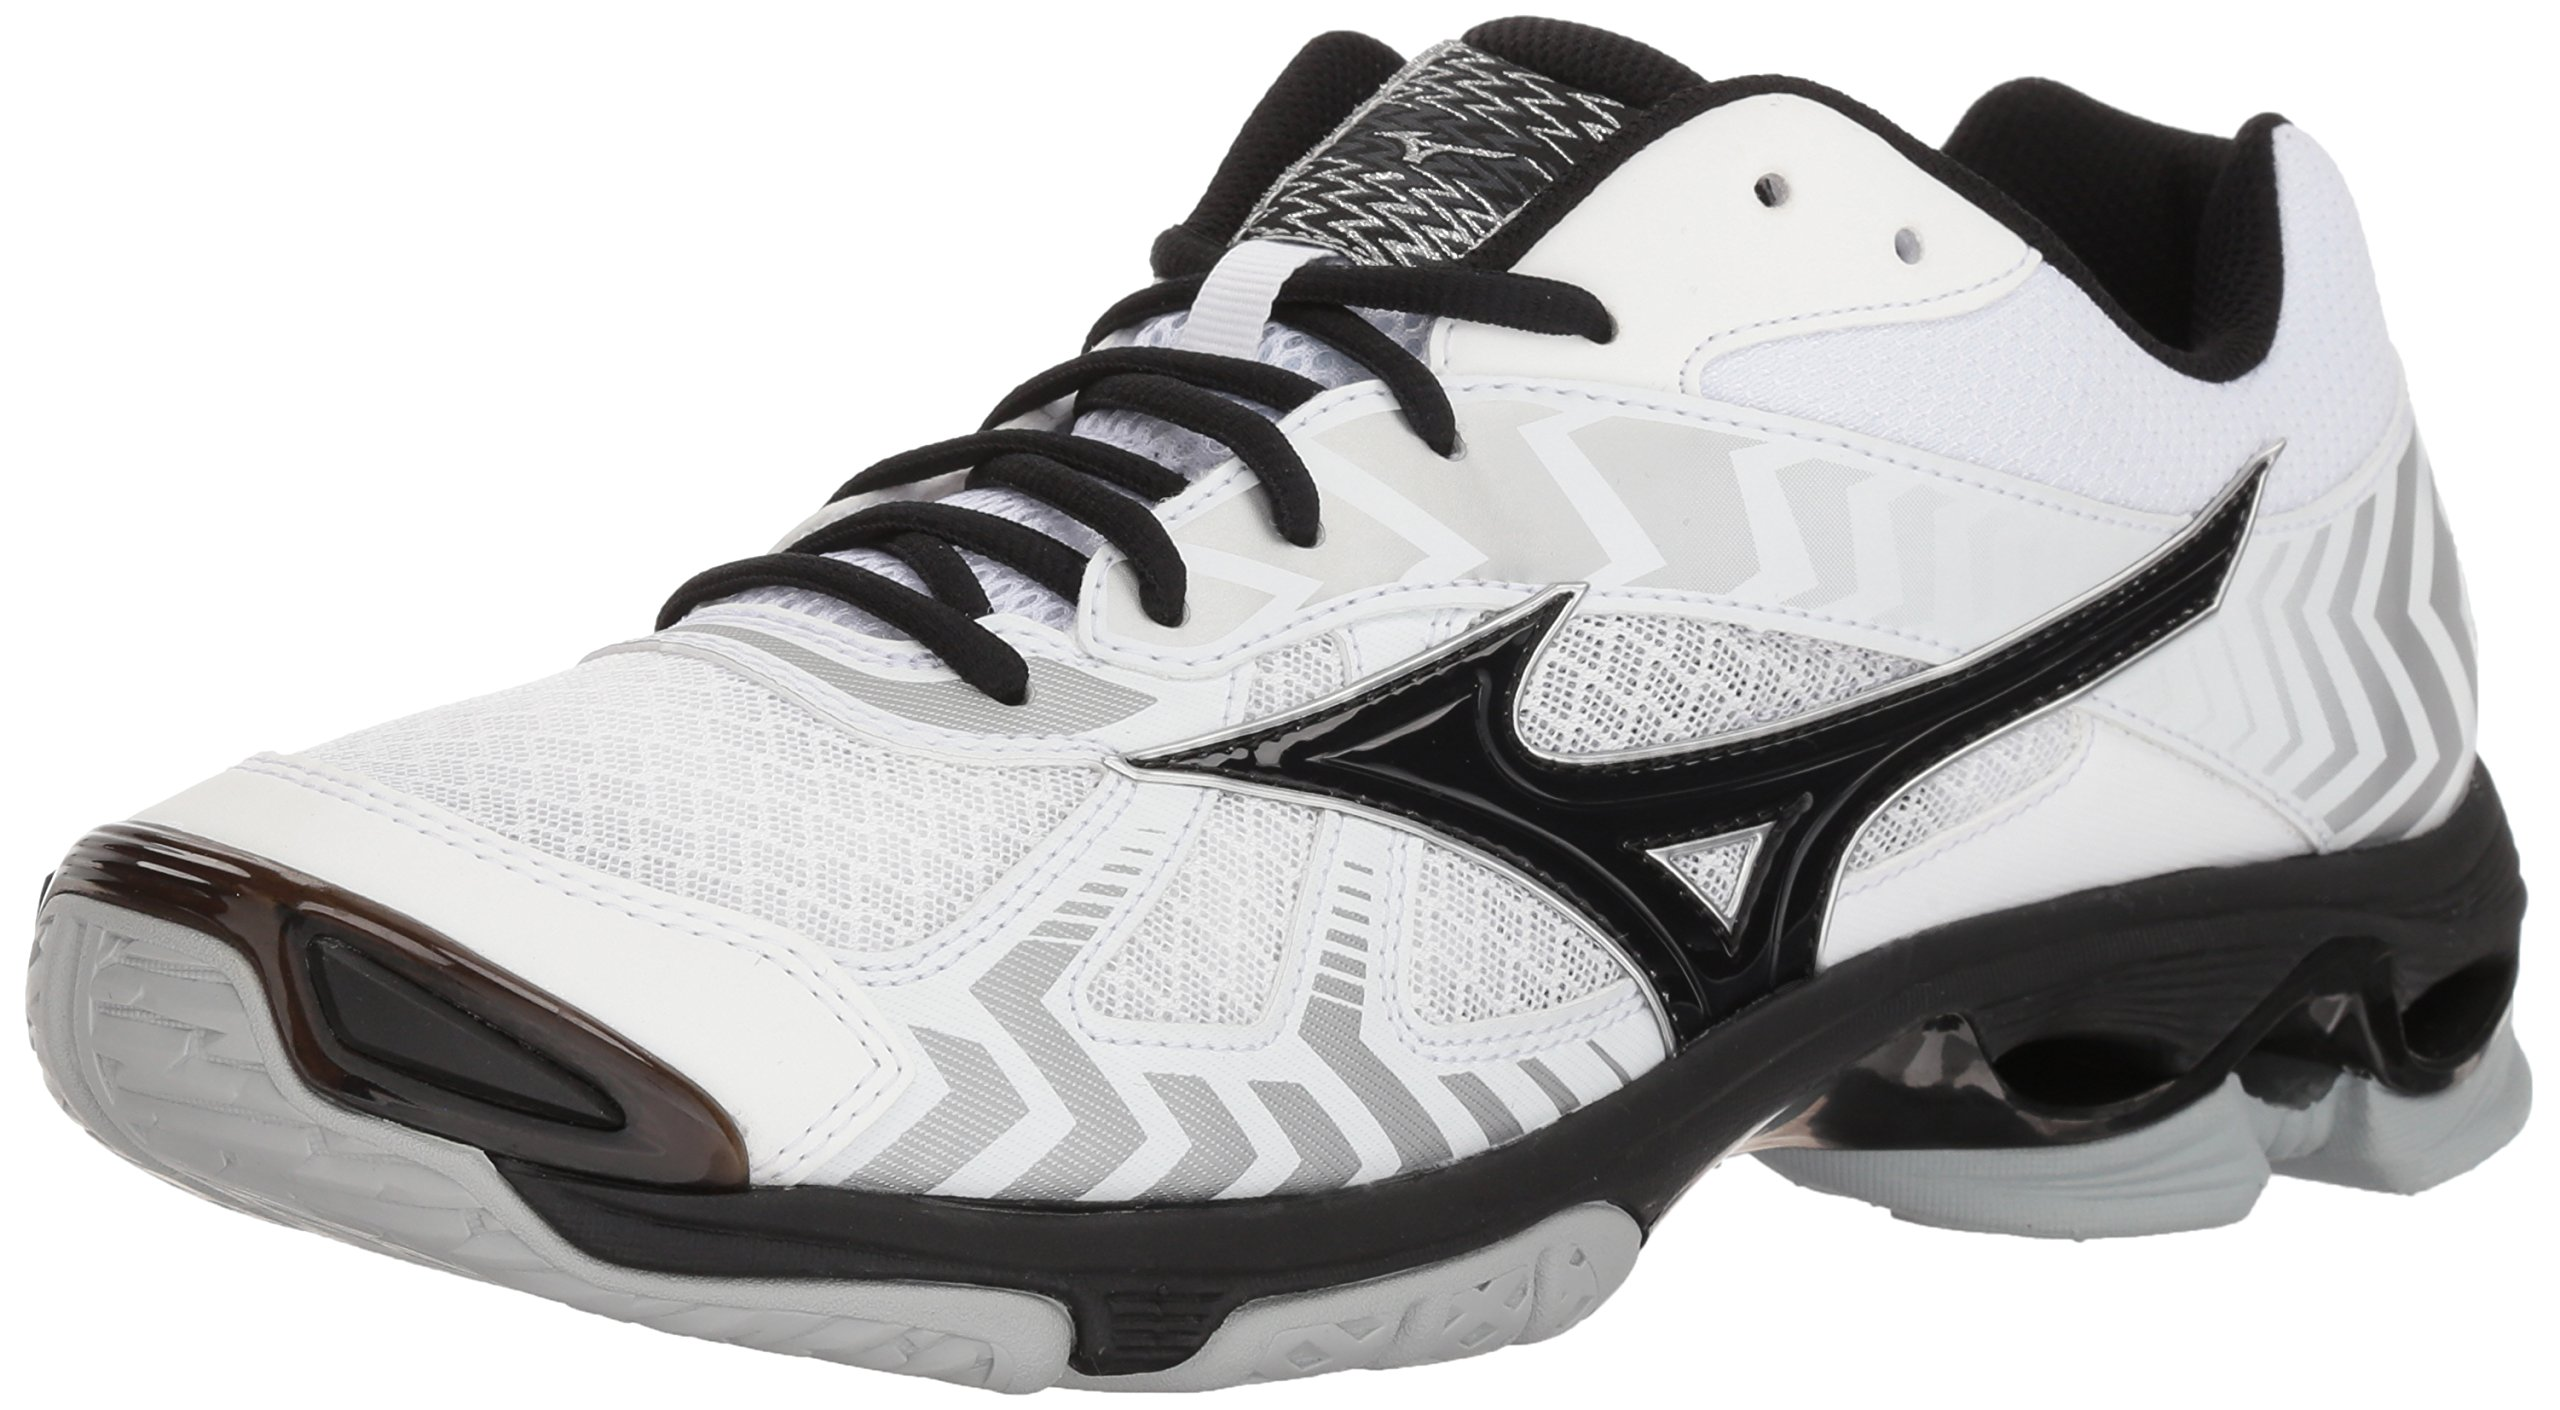 Mizuno Men's Wave Bolt 7 Volleyball Shoe, White/Black, Men's 16 D US by Mizuno